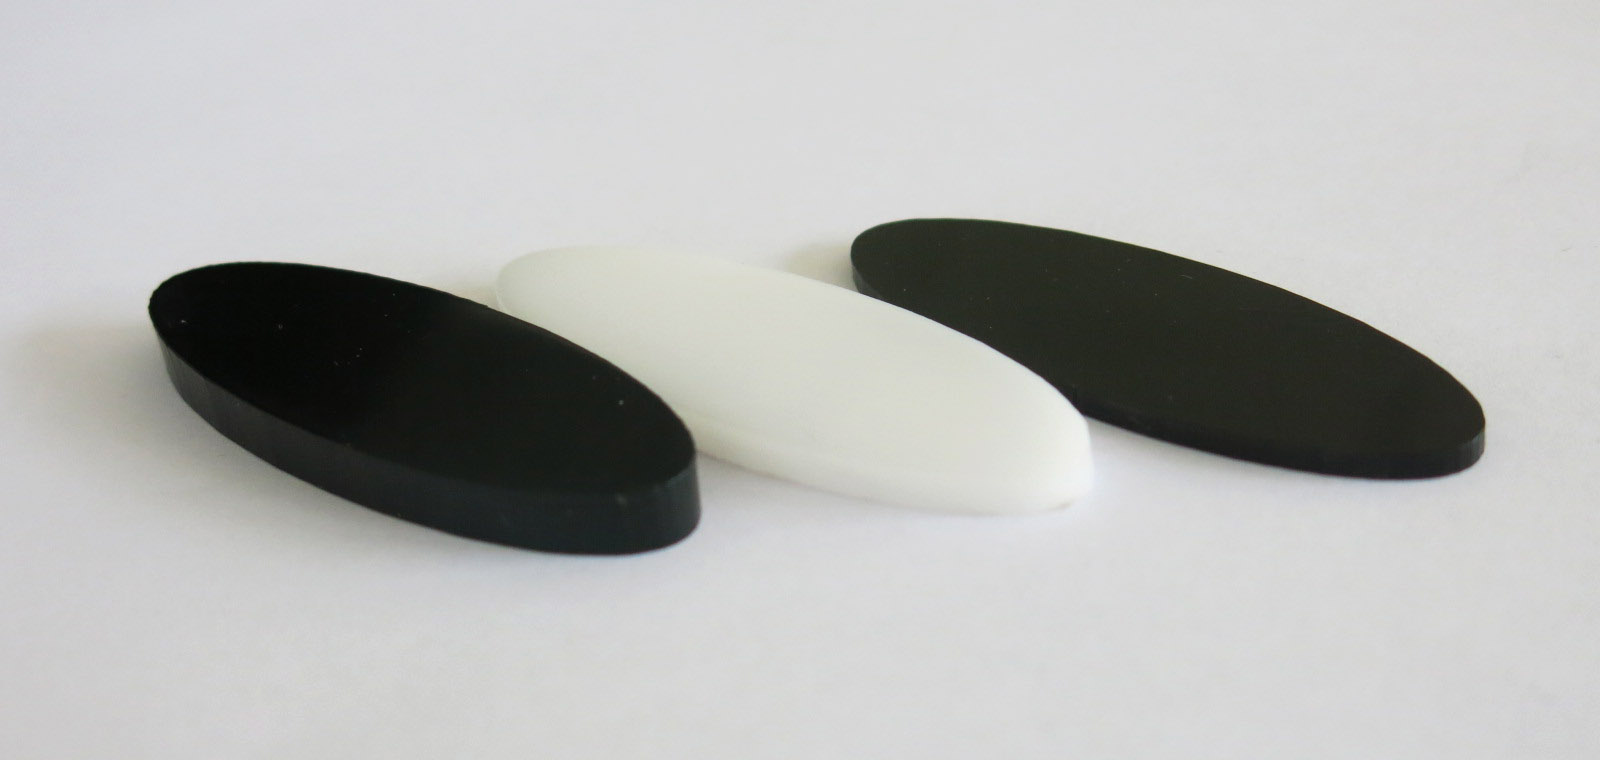 POM material thickness black and white for laser cutting